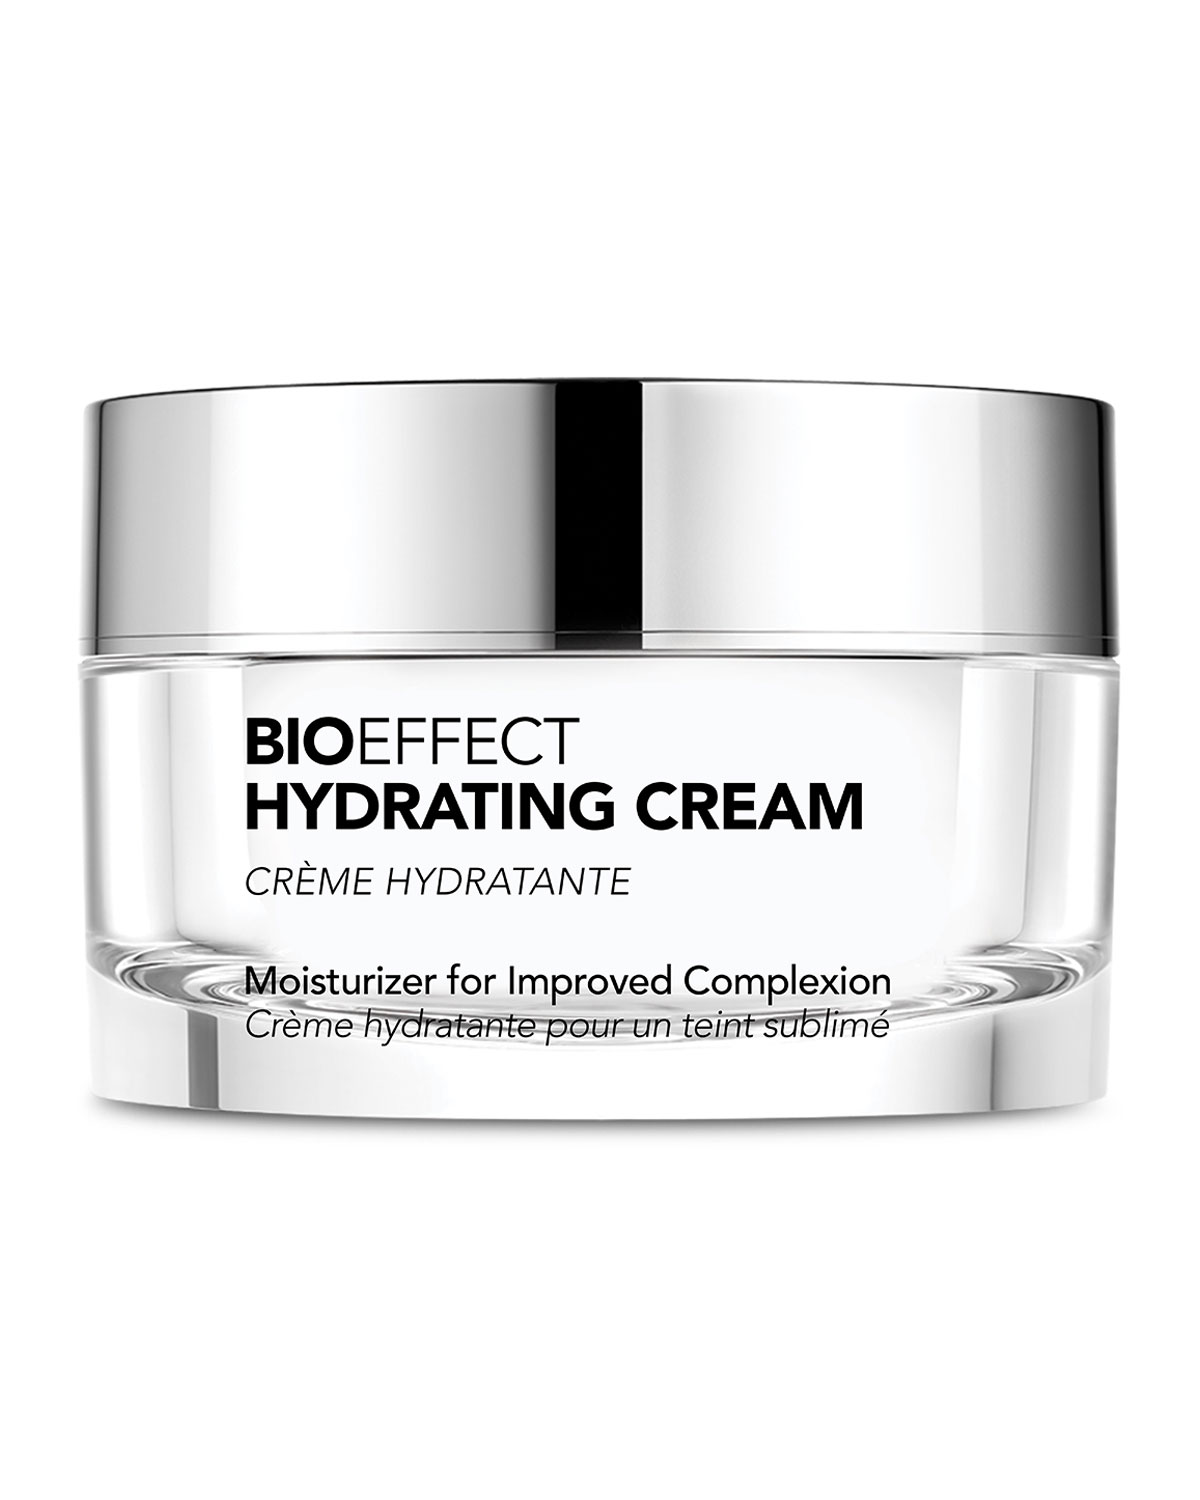 Bioeffect 1.7 OZ. HYDRATING CREAM